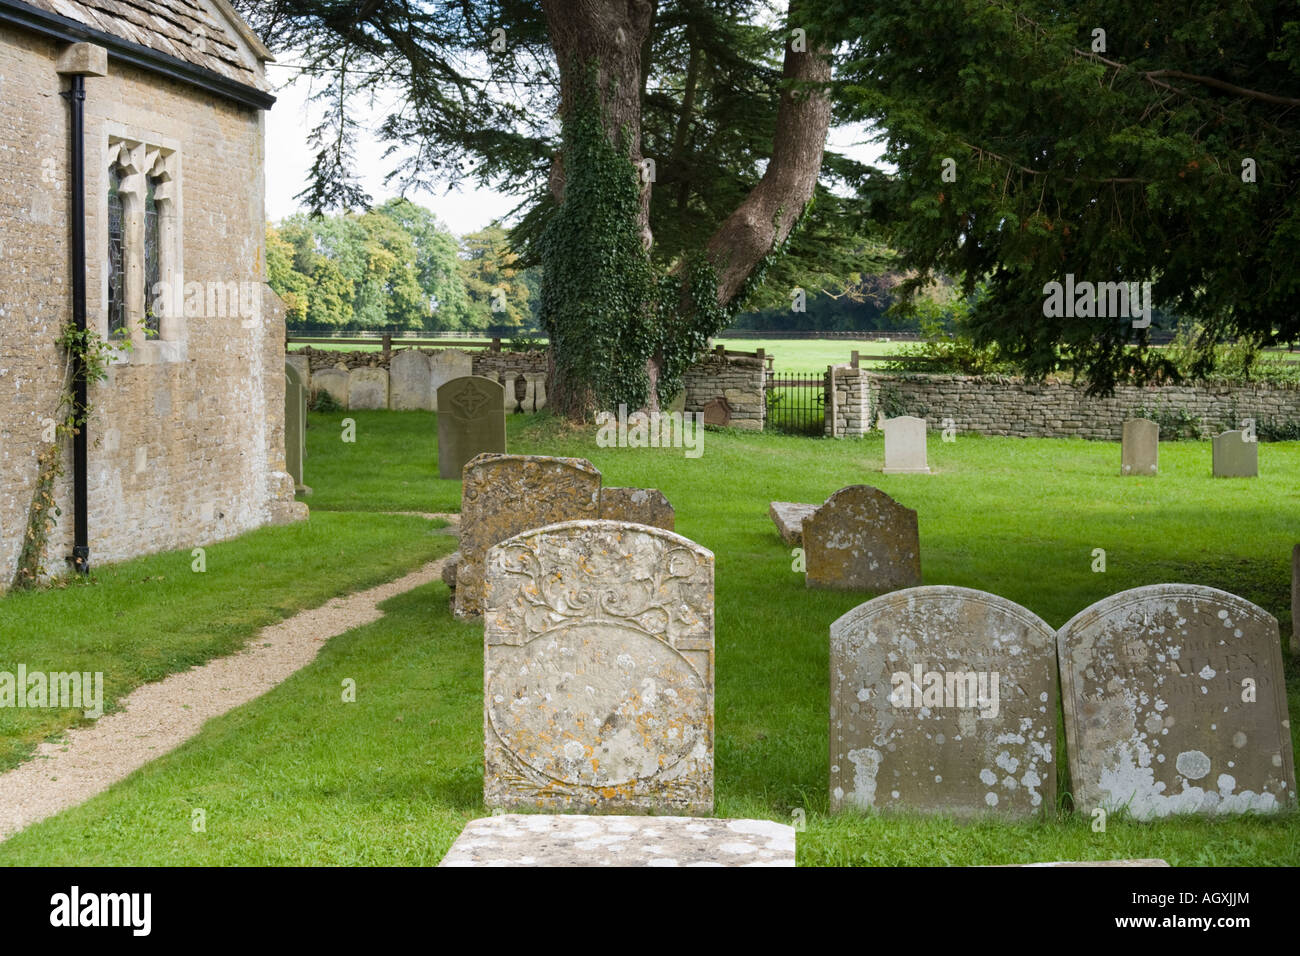 The churchyard of St Peters church in the Cotswold village of Ampney St Peter, Gloucestershire - Stock Image